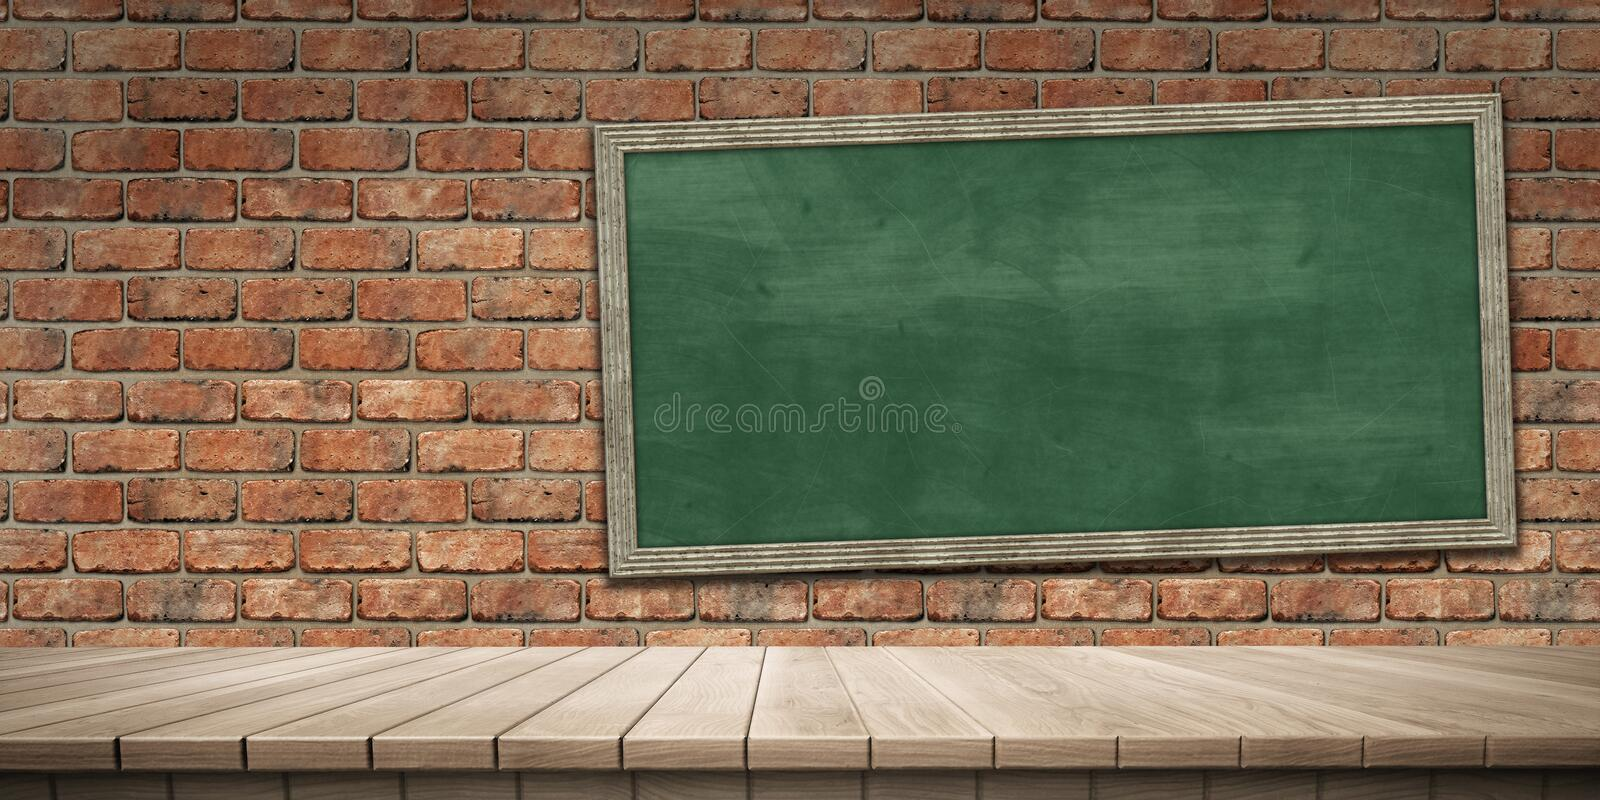 Closeup of colorful wooden platform and blackboard/chalkboard background, front view. High-resolution 3D CG rendering illustration vector illustration